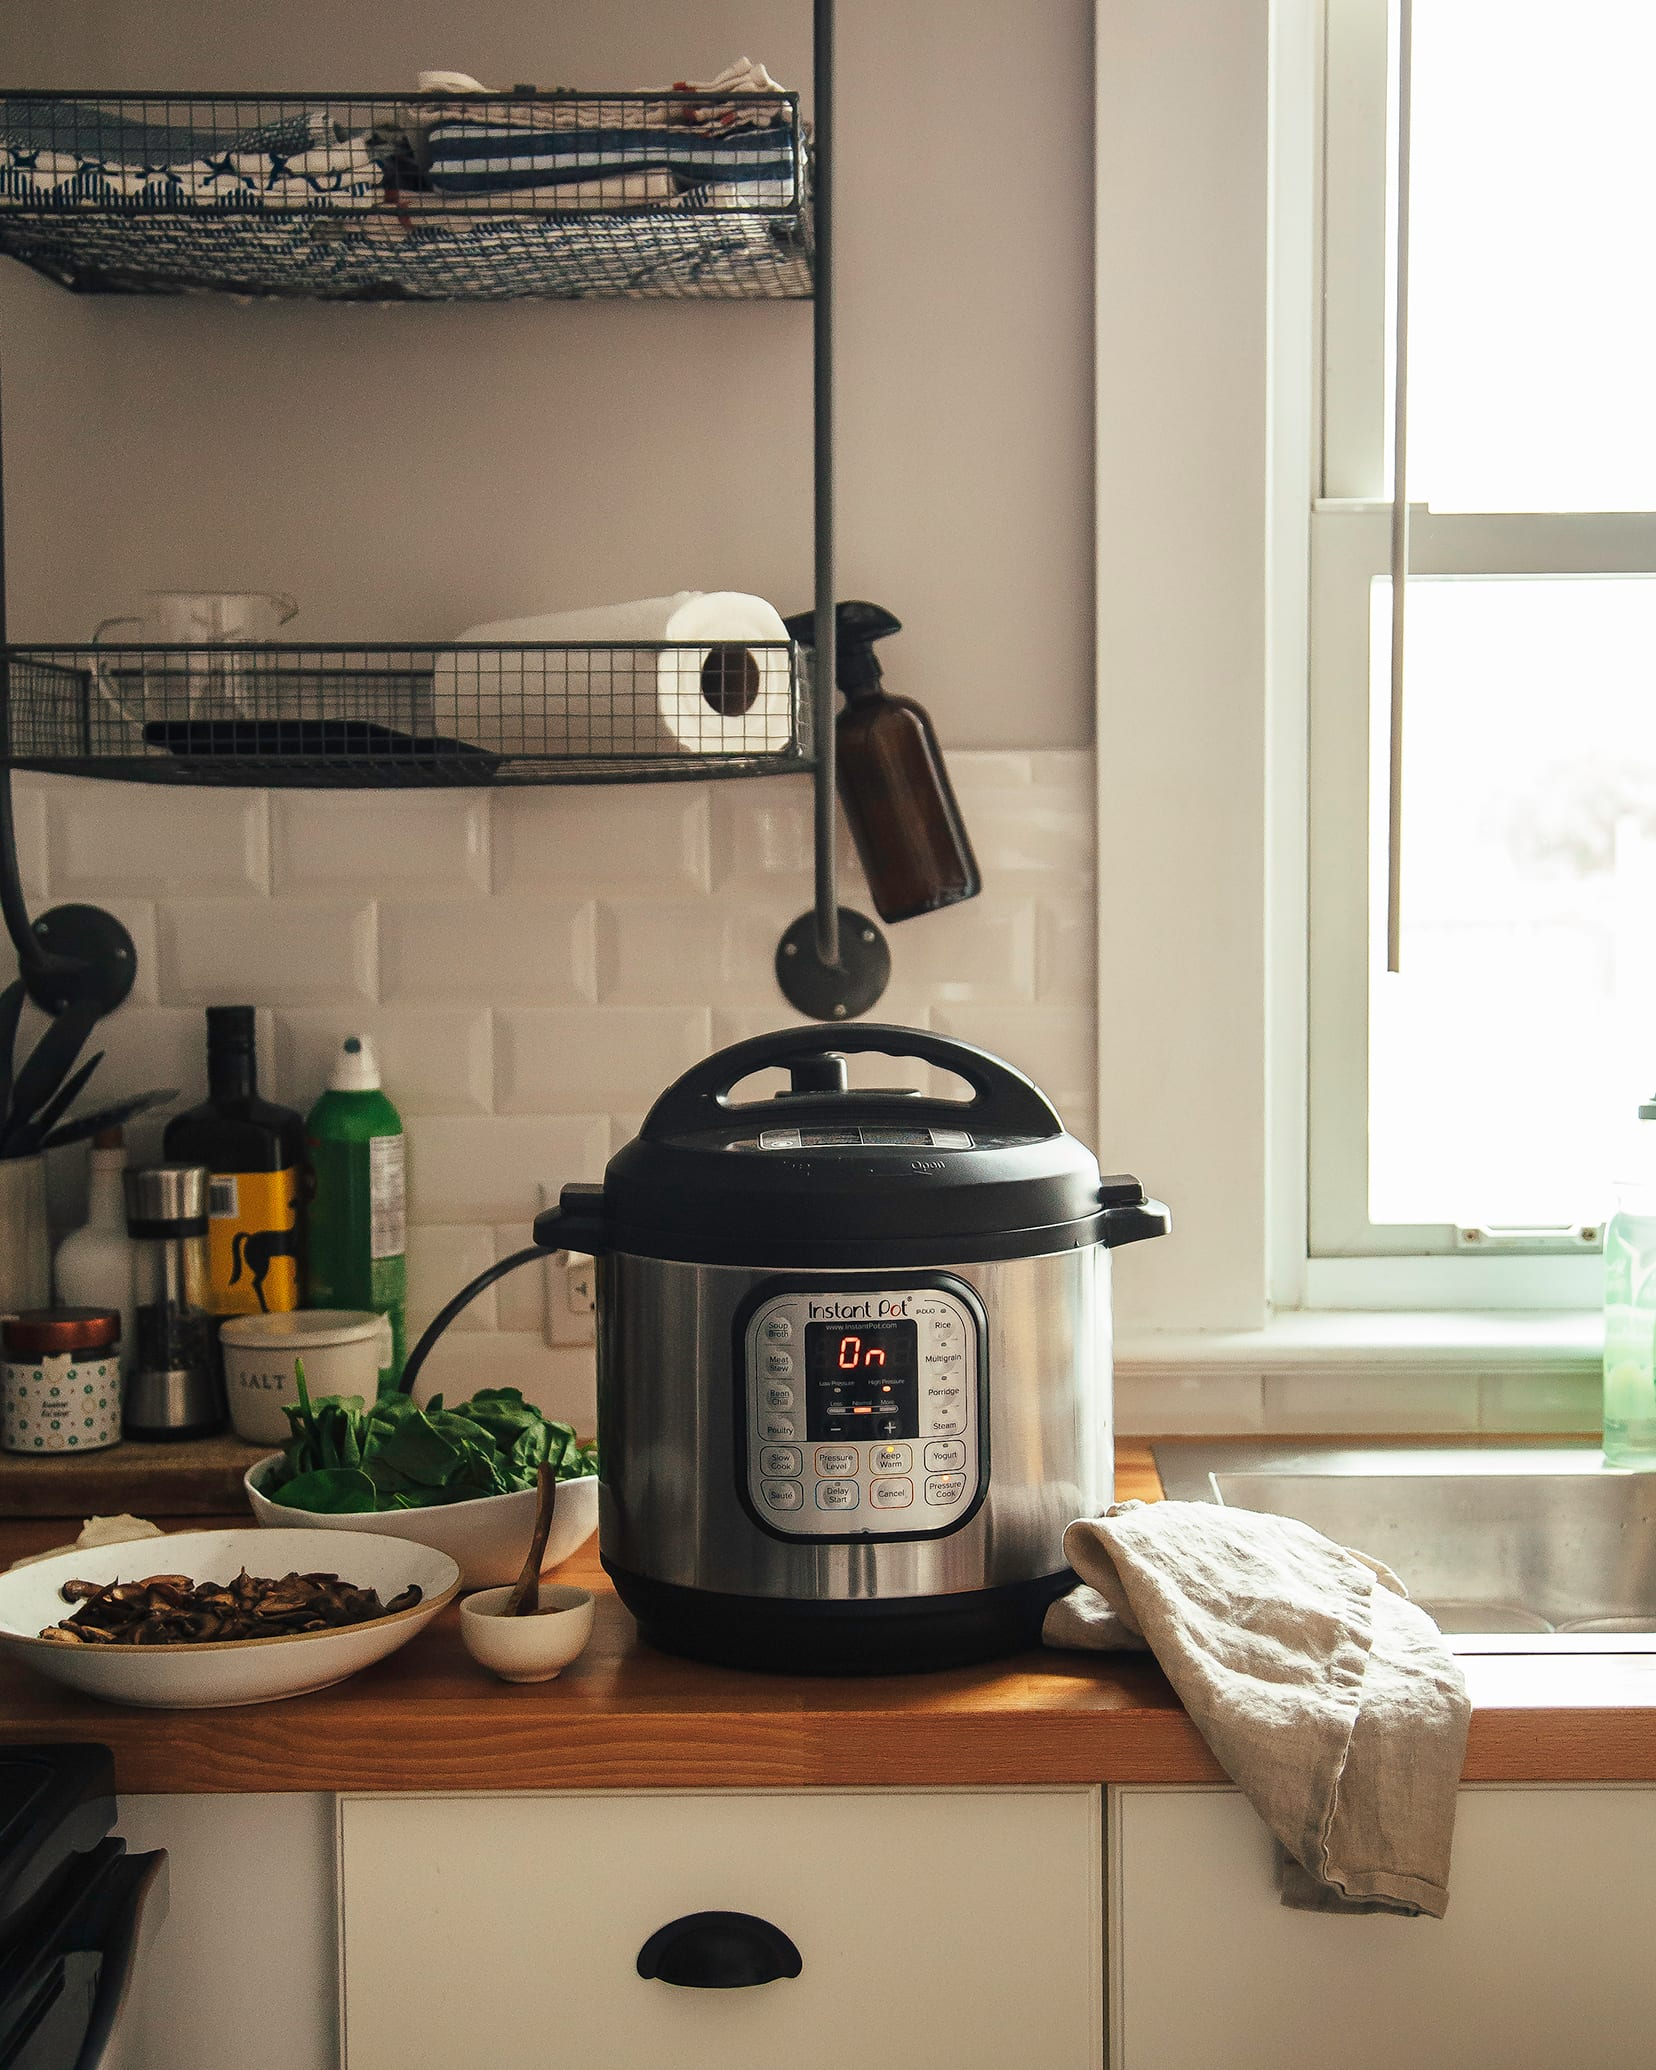 Image shows a kitchen scene with an Instant Pot on the counter.